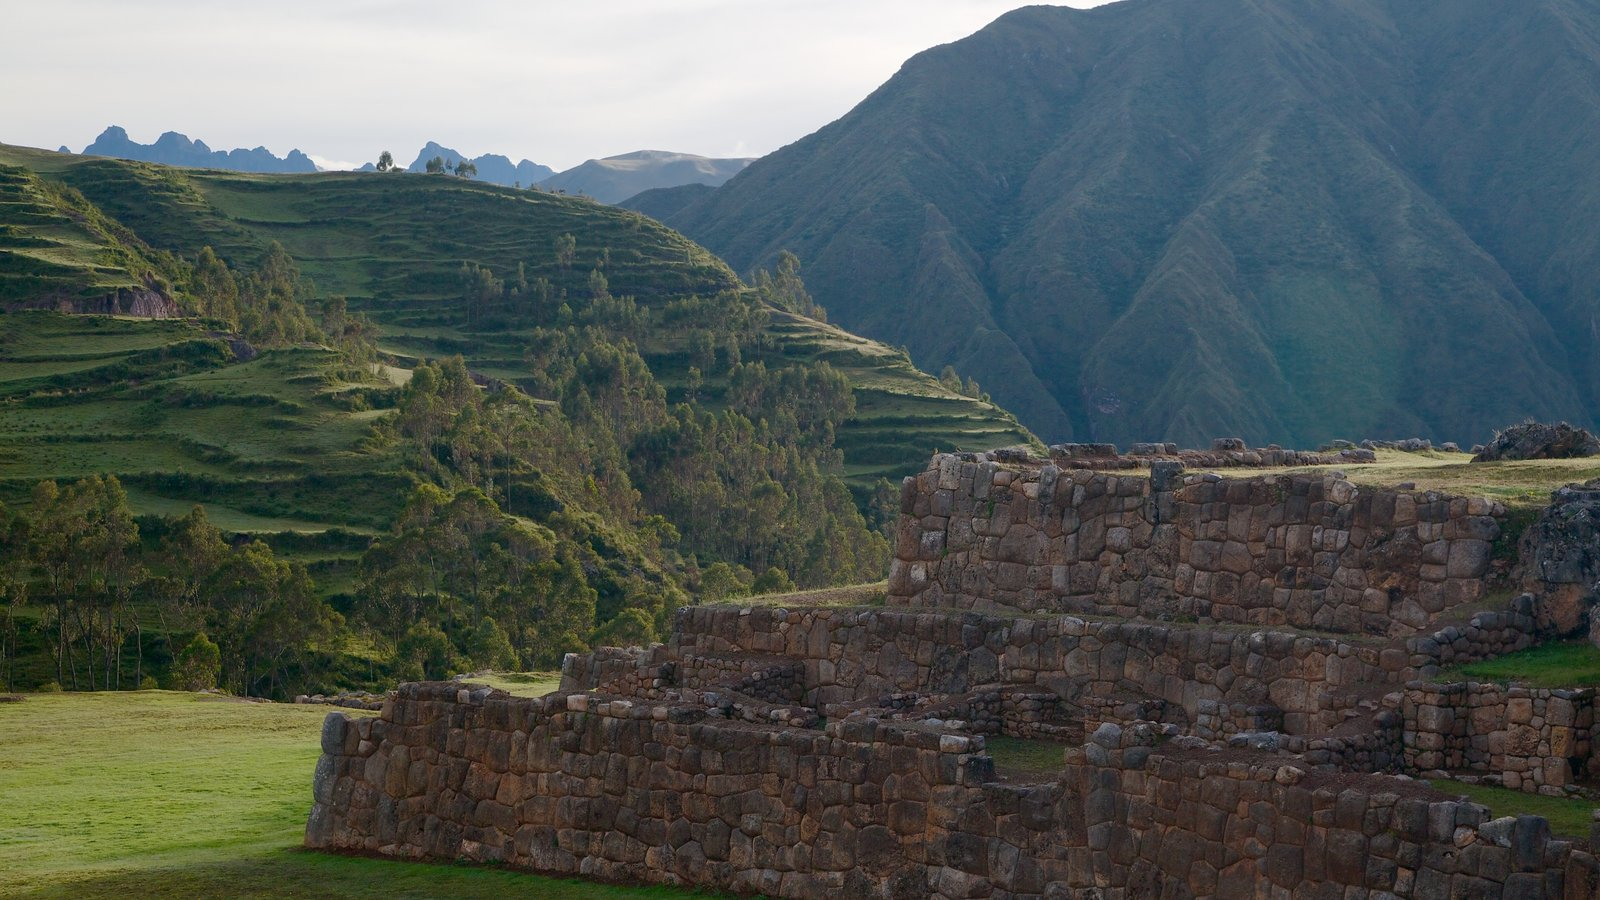 Chincheros showing heritage elements, mountains and landscape views